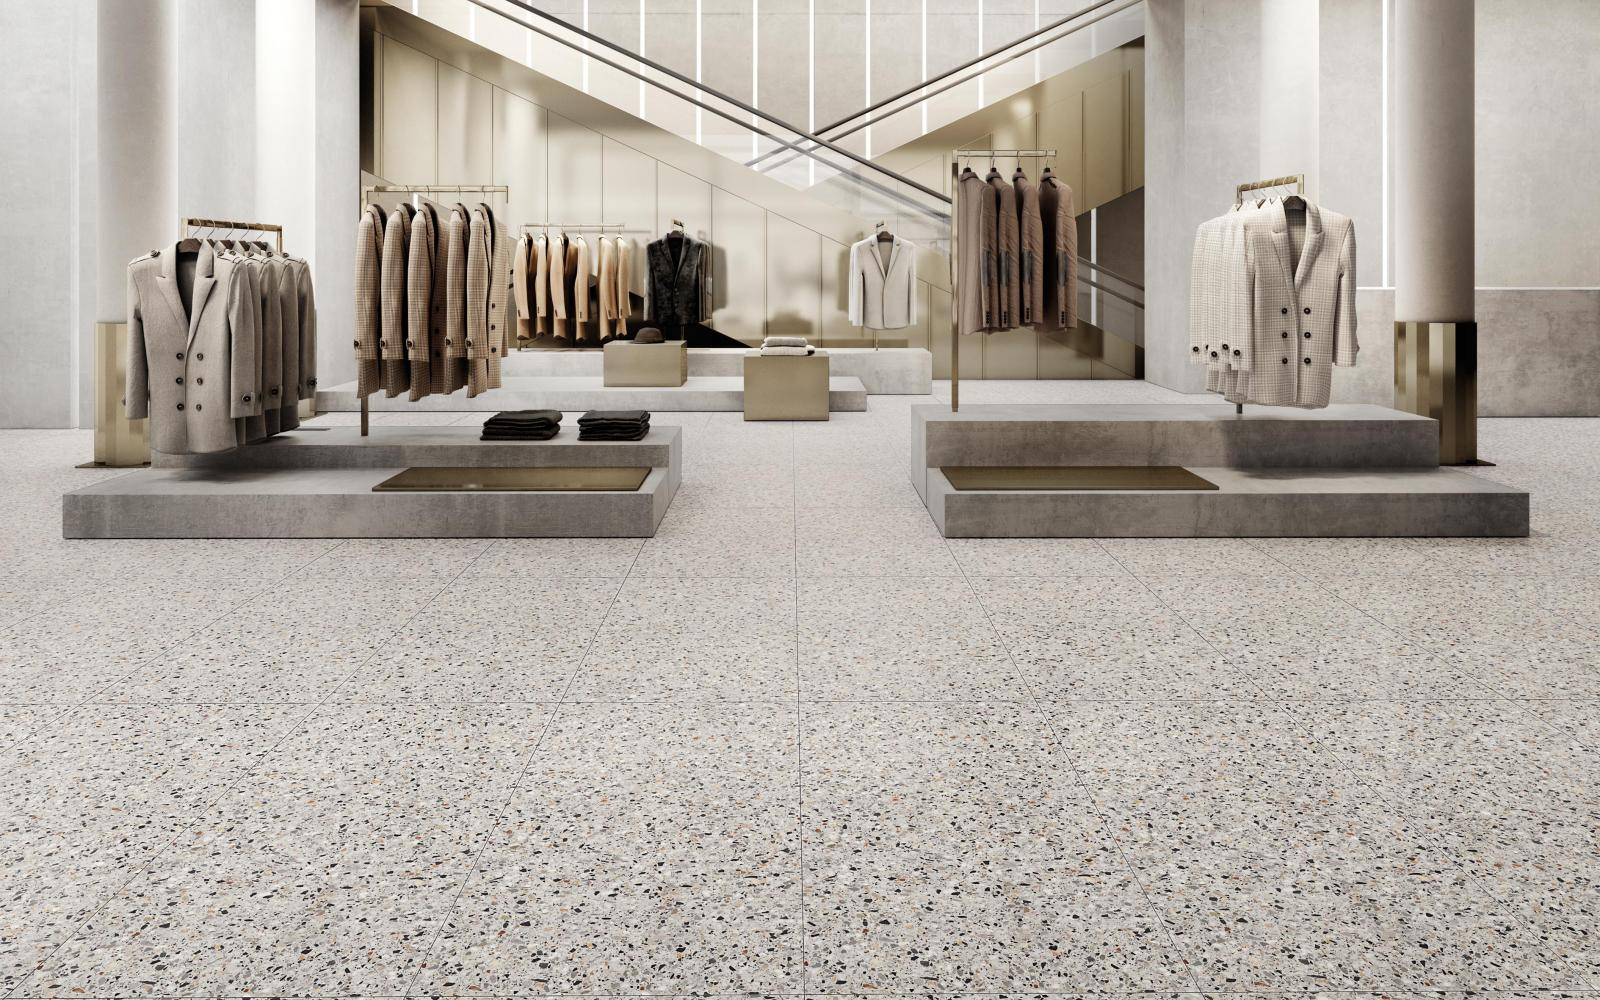 INTRODUCING CERAMICHE PIEMME CONTRACT